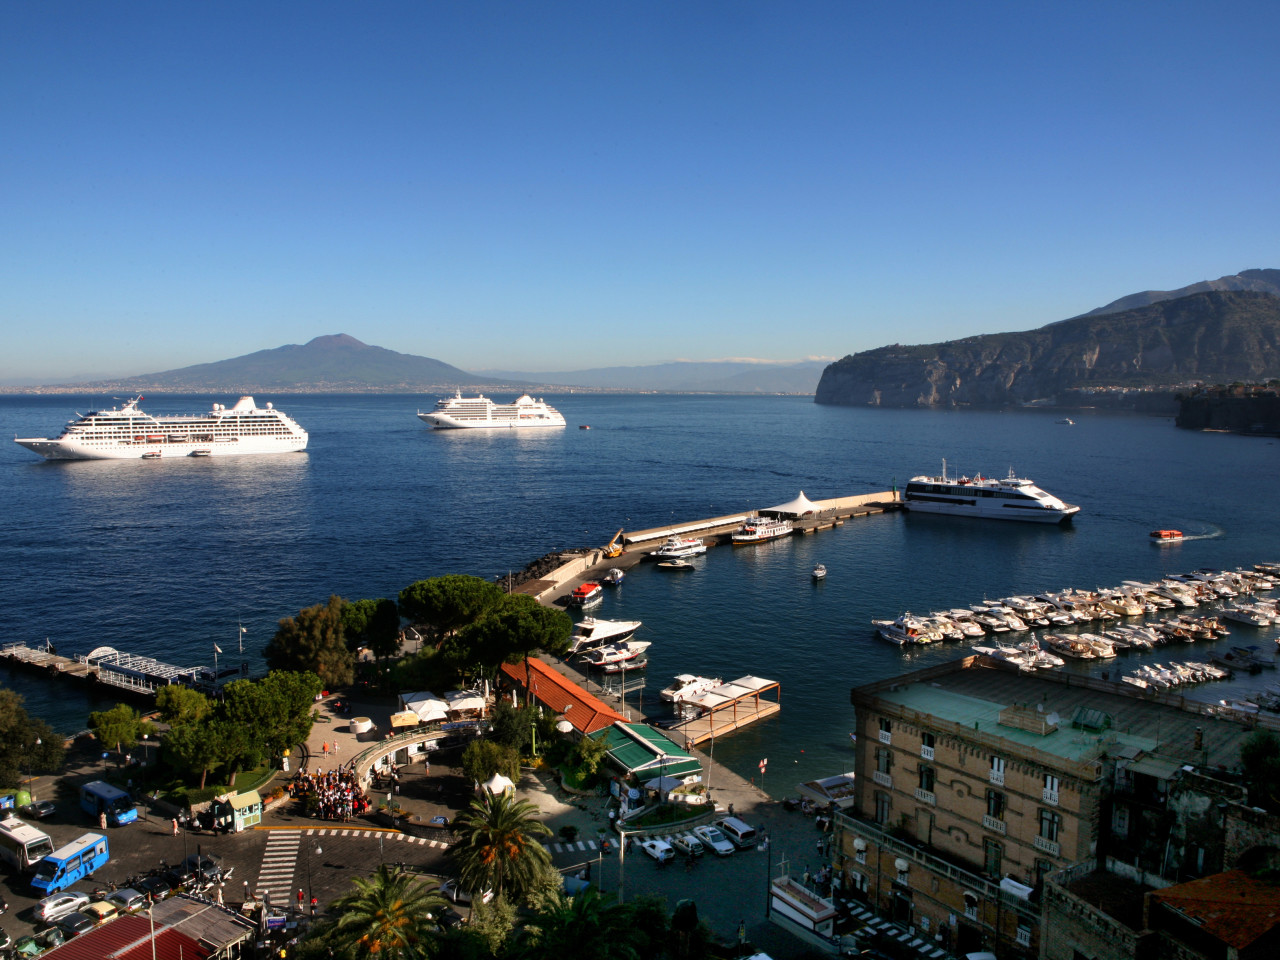 Escursioni dal porto di Sorrento | Star Cars lxury tours Amalfi coast